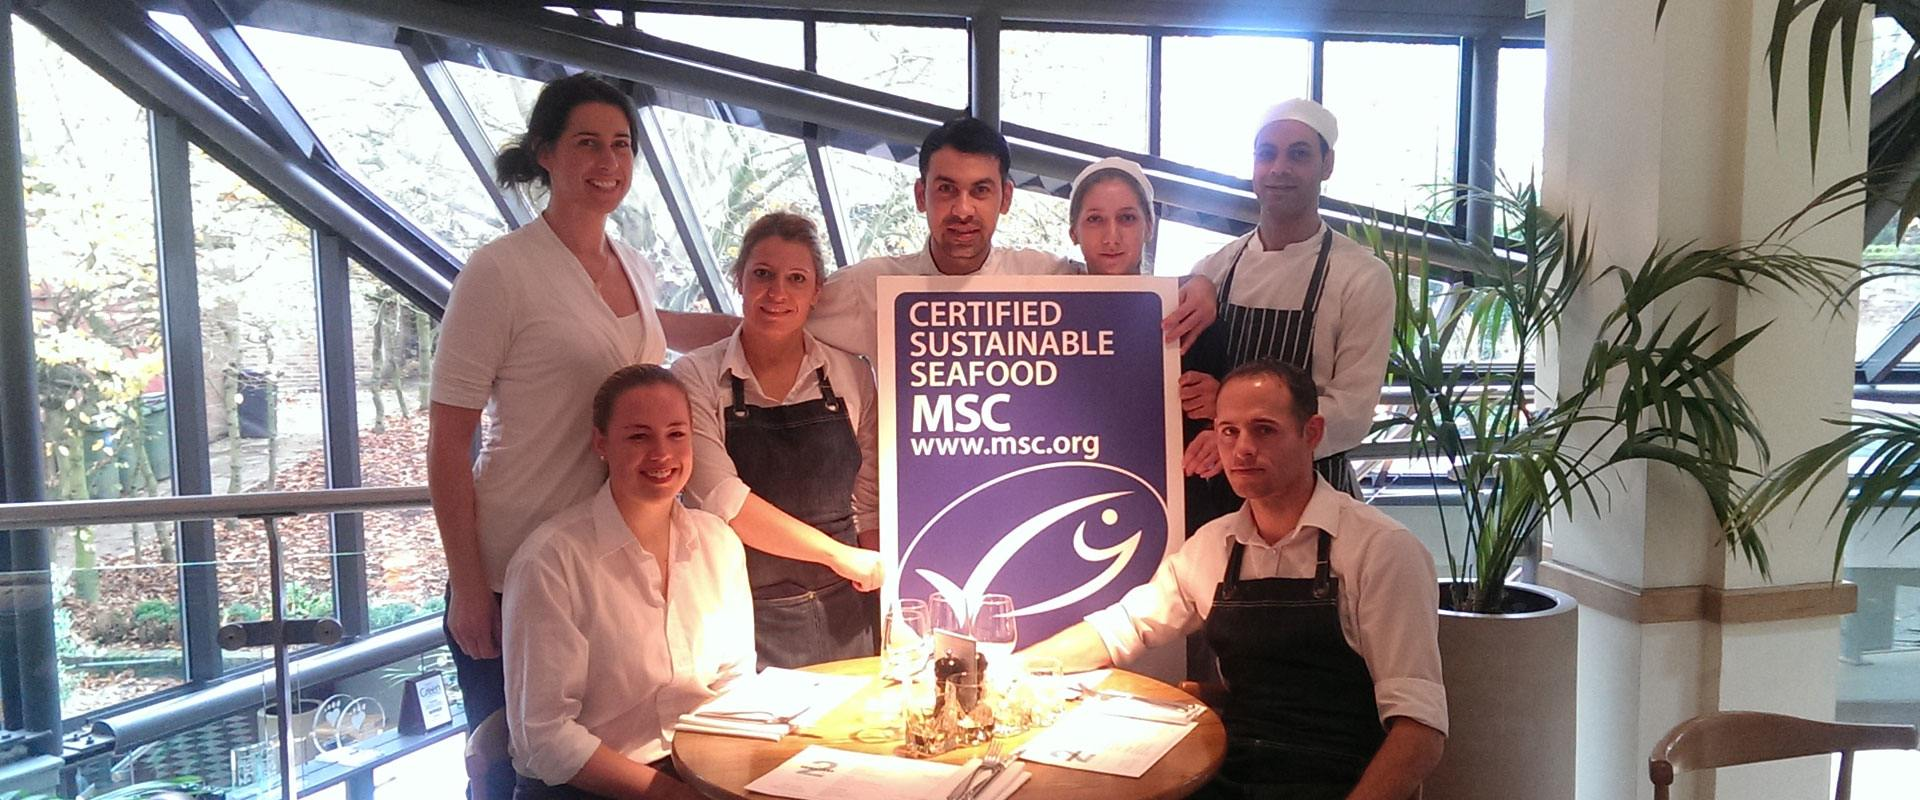 Andrei accepts the MSC UK Chef of the Year 2016 Award